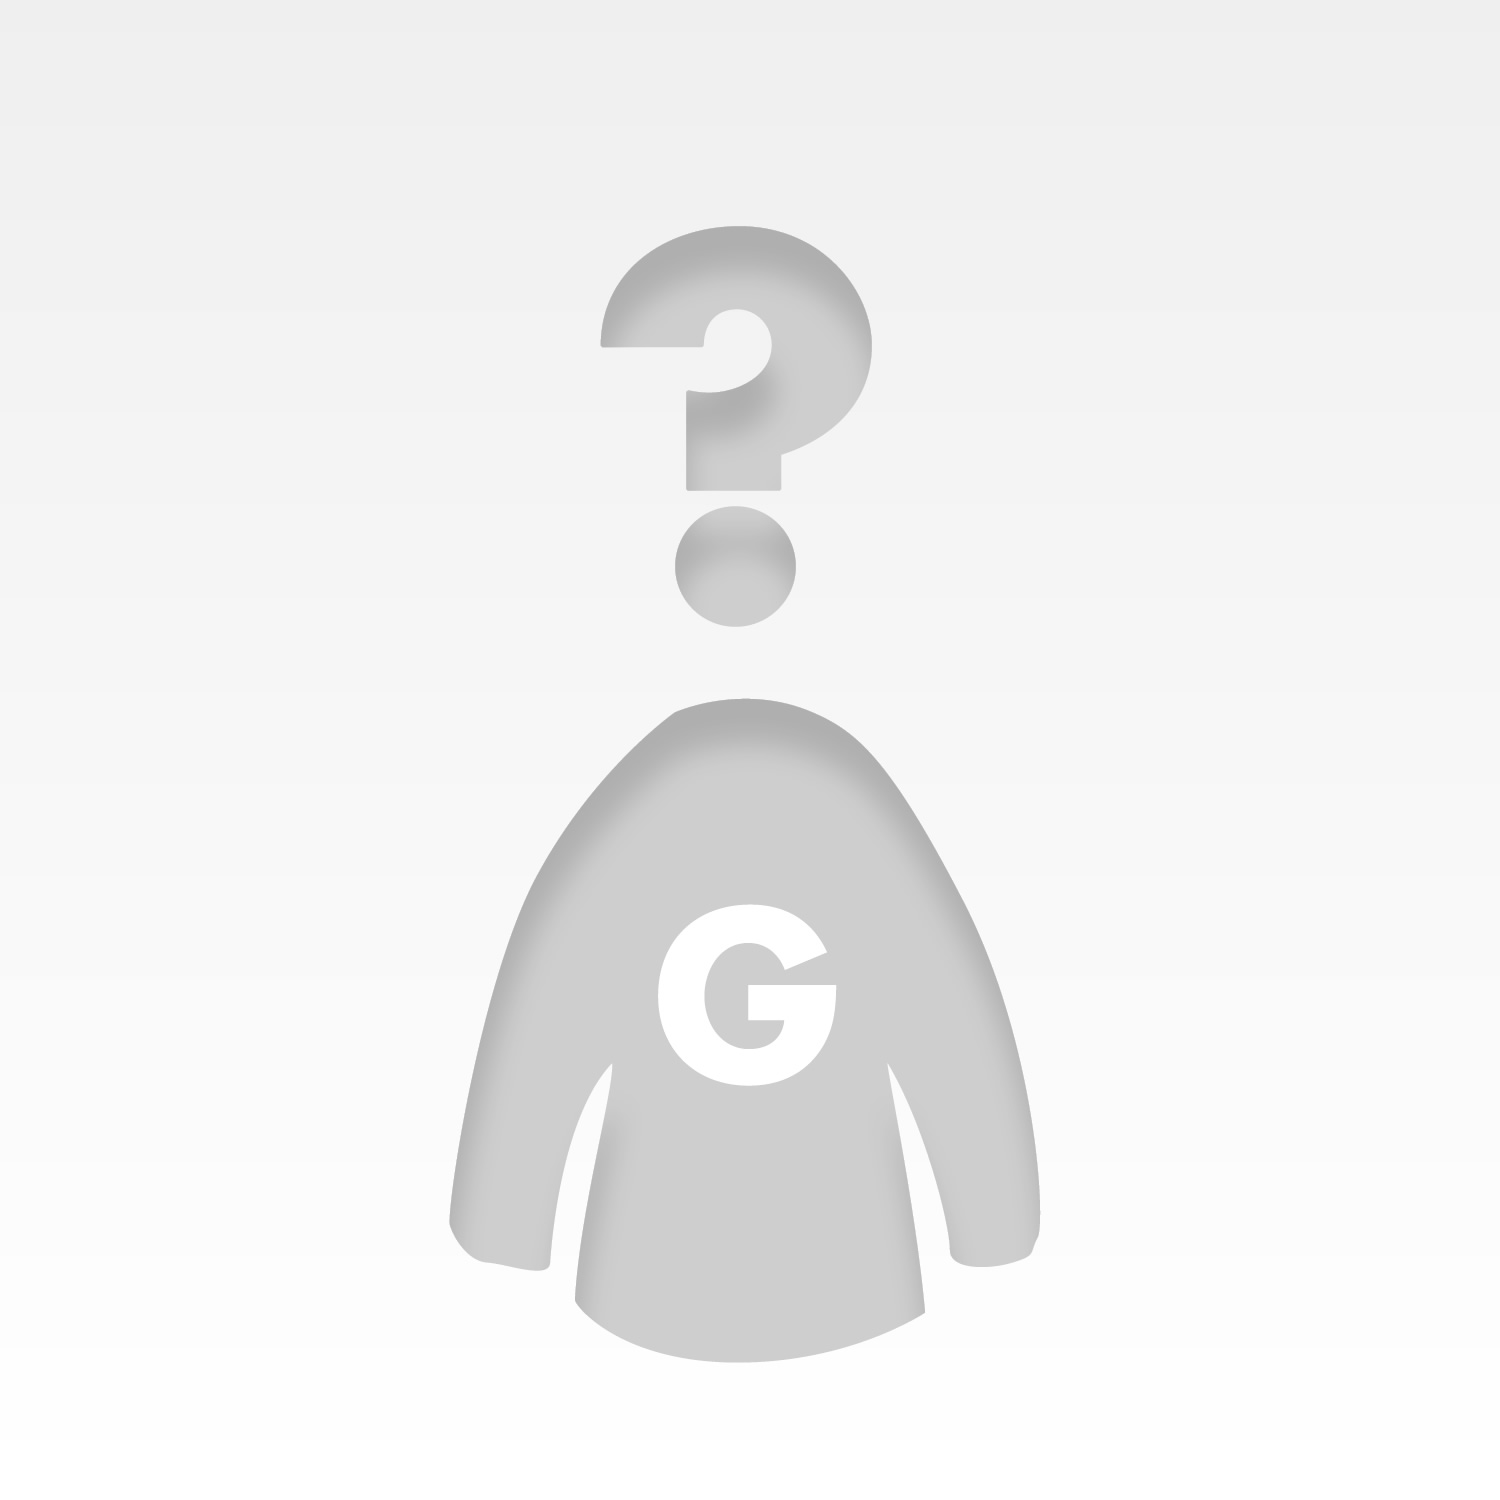 The s4g5d3m's avatar